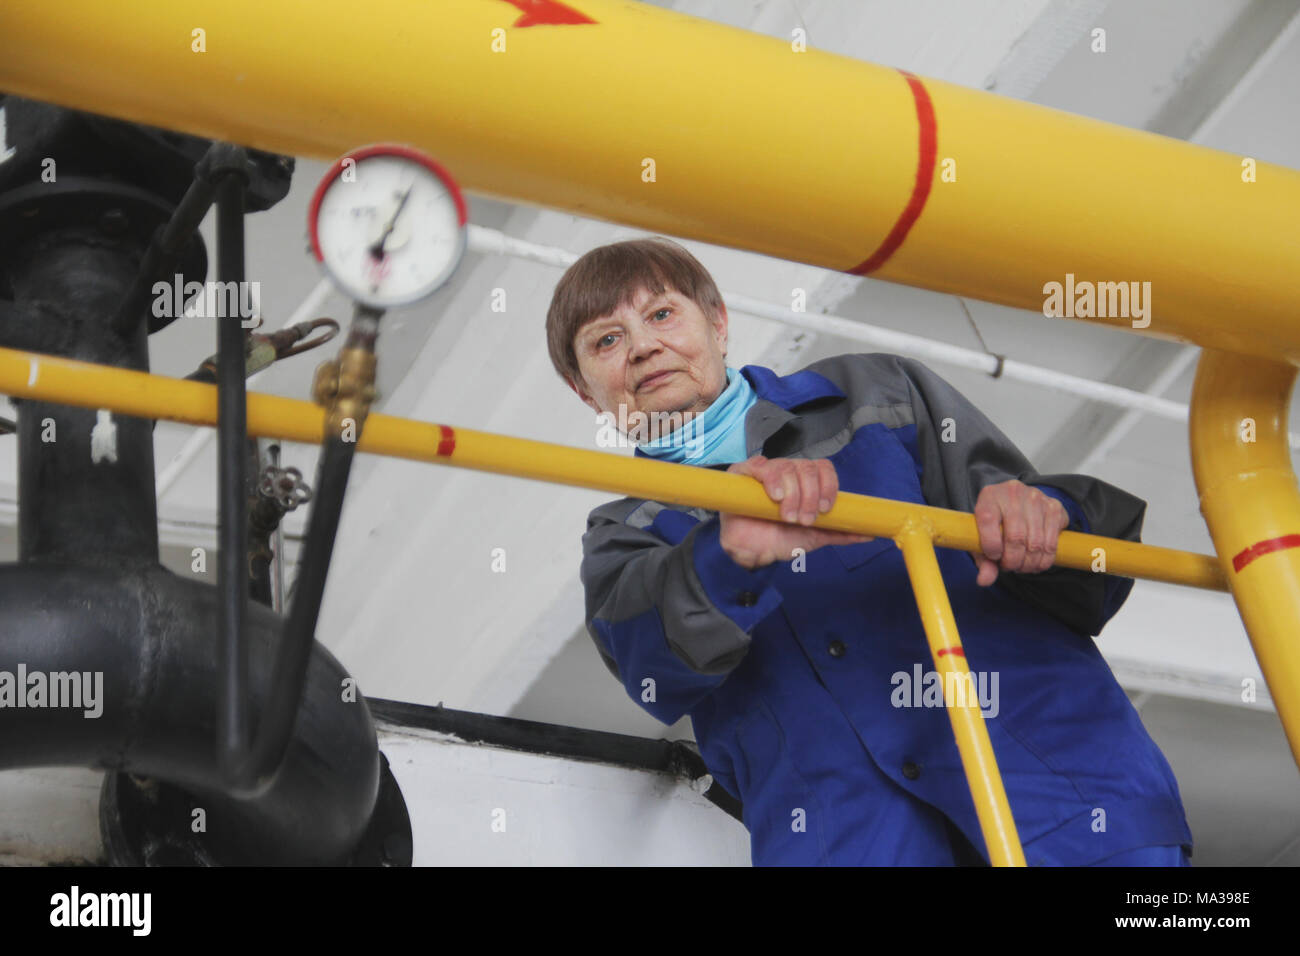 The elderly woman in work overalls on manufacturing site is checking gauge - Stock Image